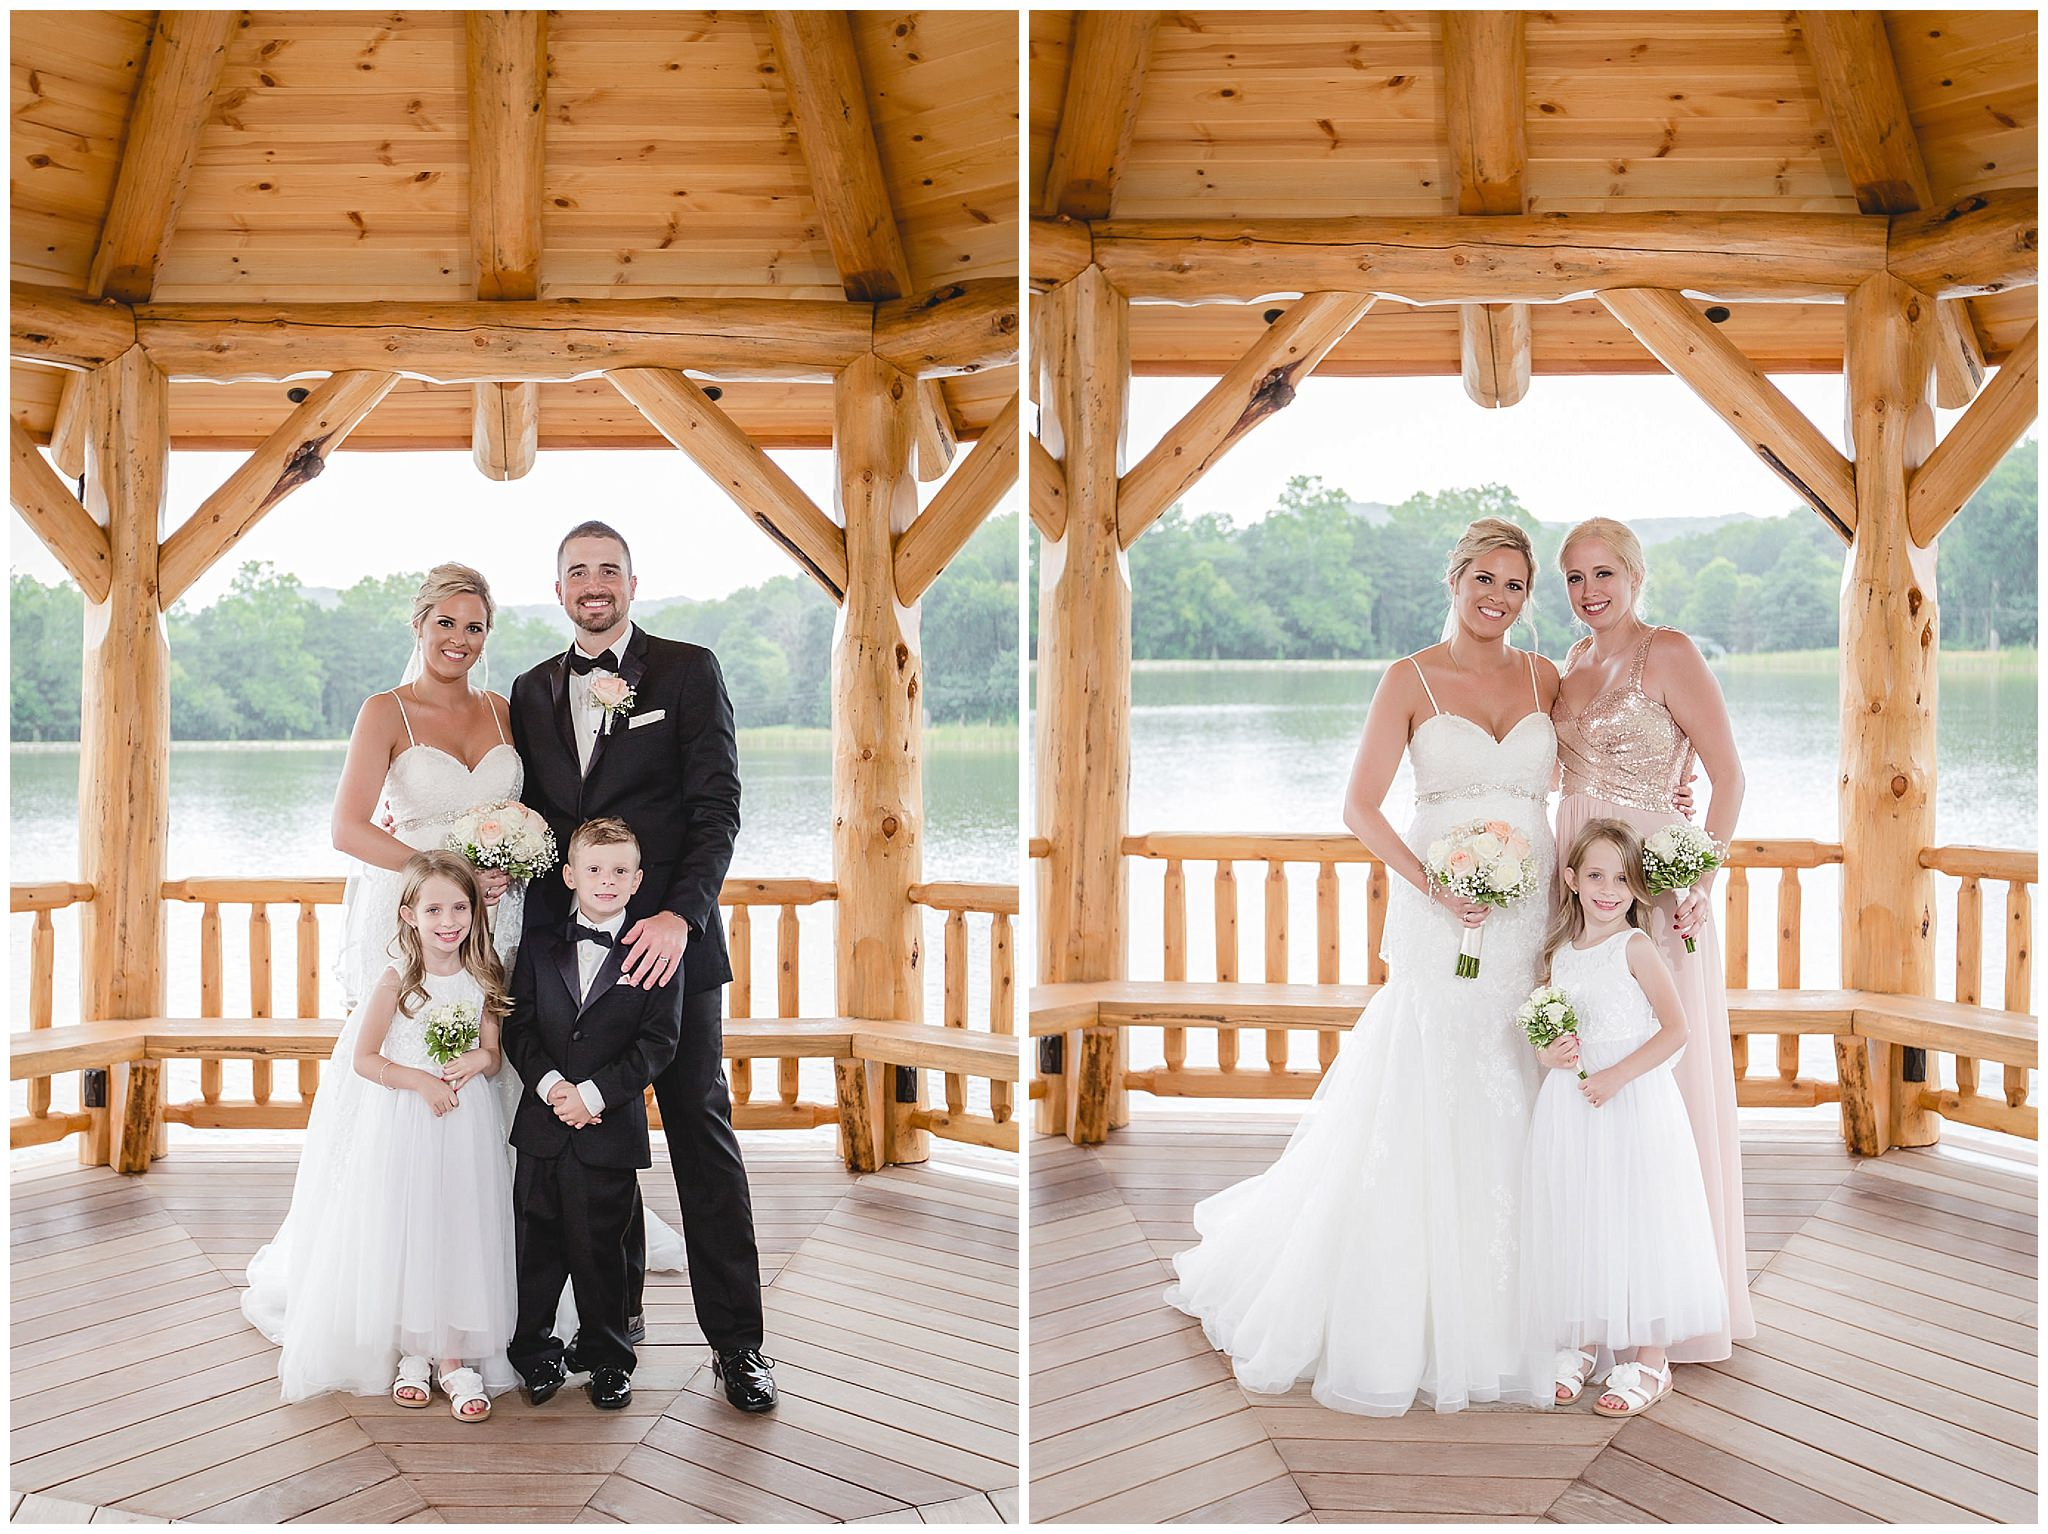 Bride and groom pose with the flower girl and ring bearer in a gazebo